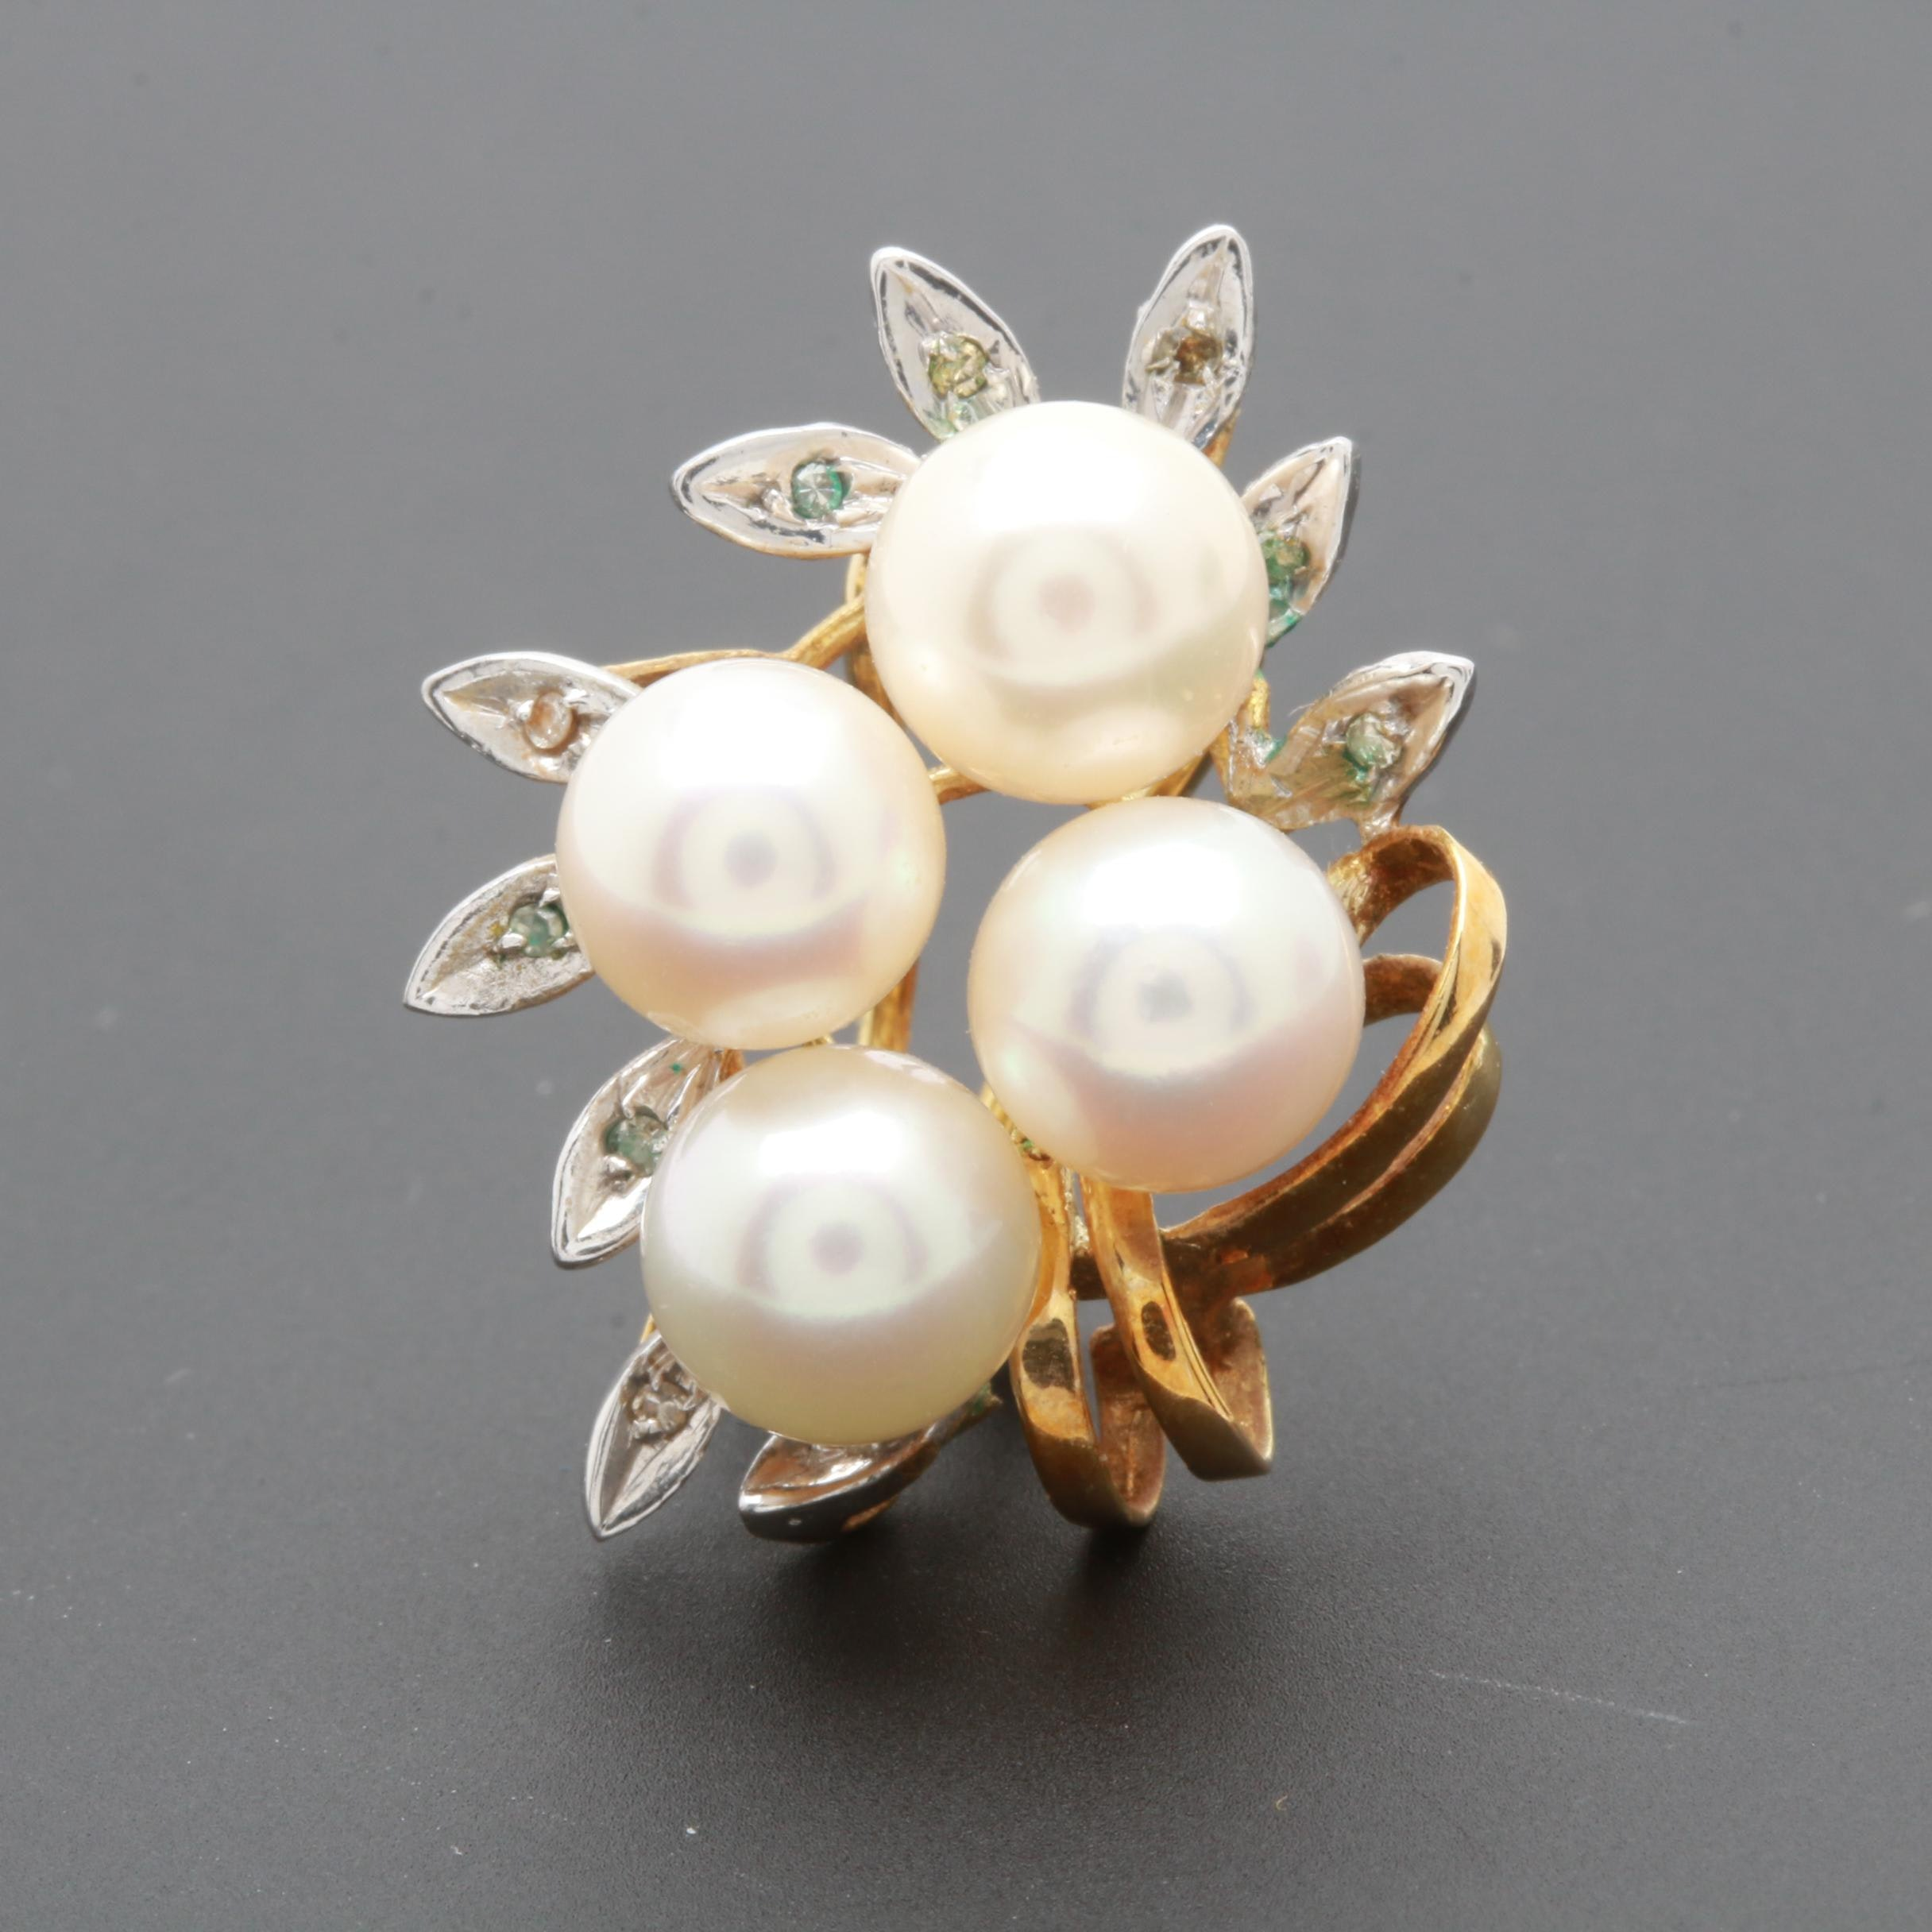 14K Yellow Gold Cultured Pearl and Diamond Earring with 14K White Gold Accent